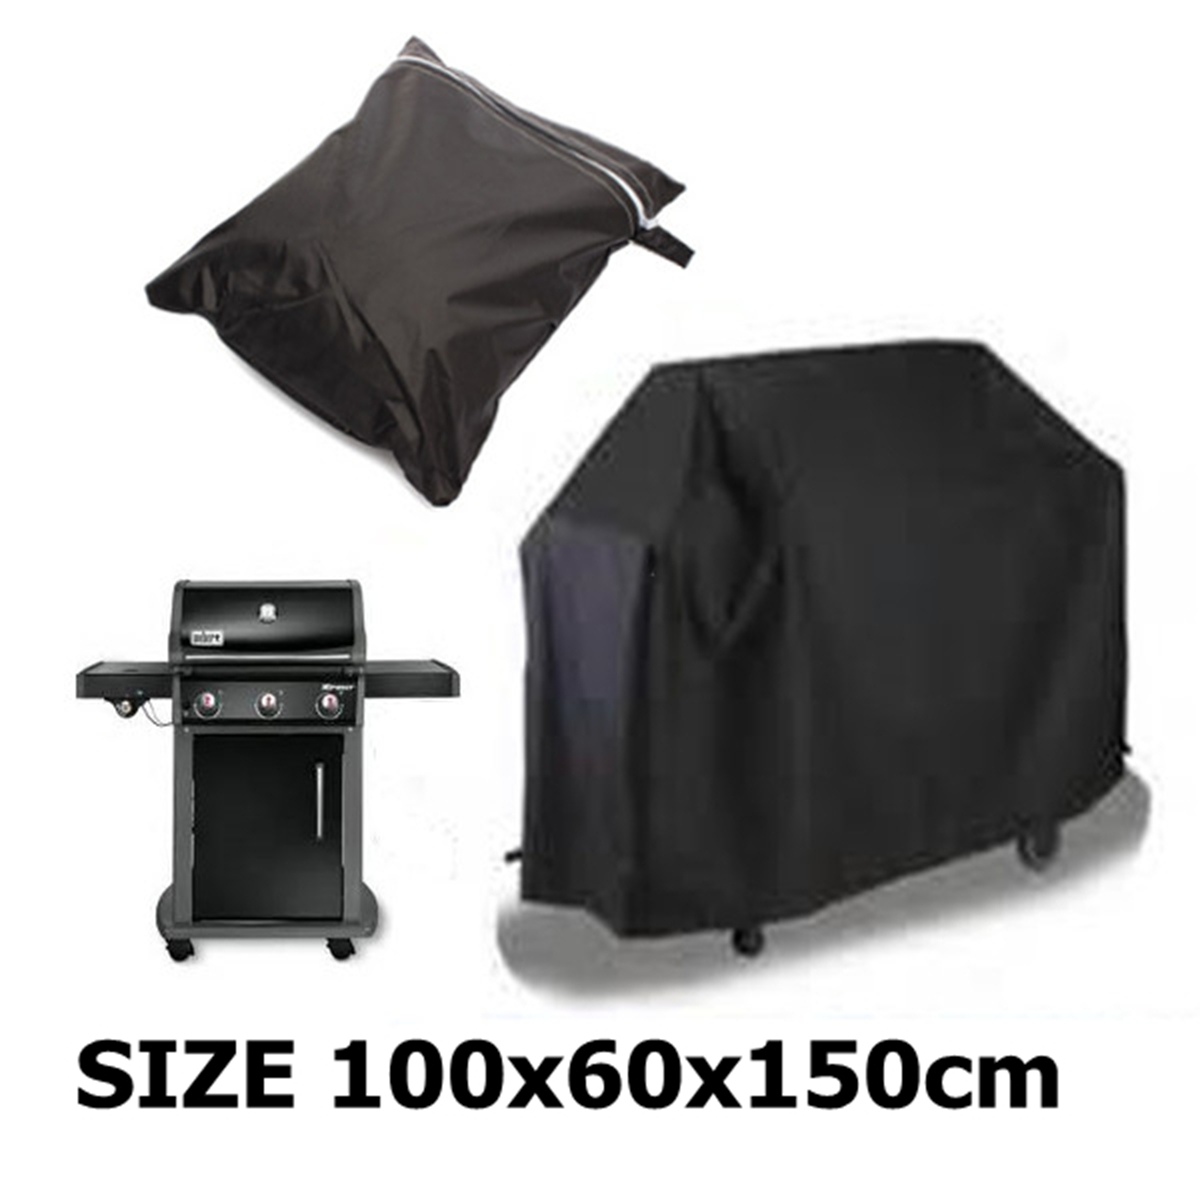 Black Waterproof BBQ Cover Outdoor Rain Barbecue Grill Protector 100X60X150cm